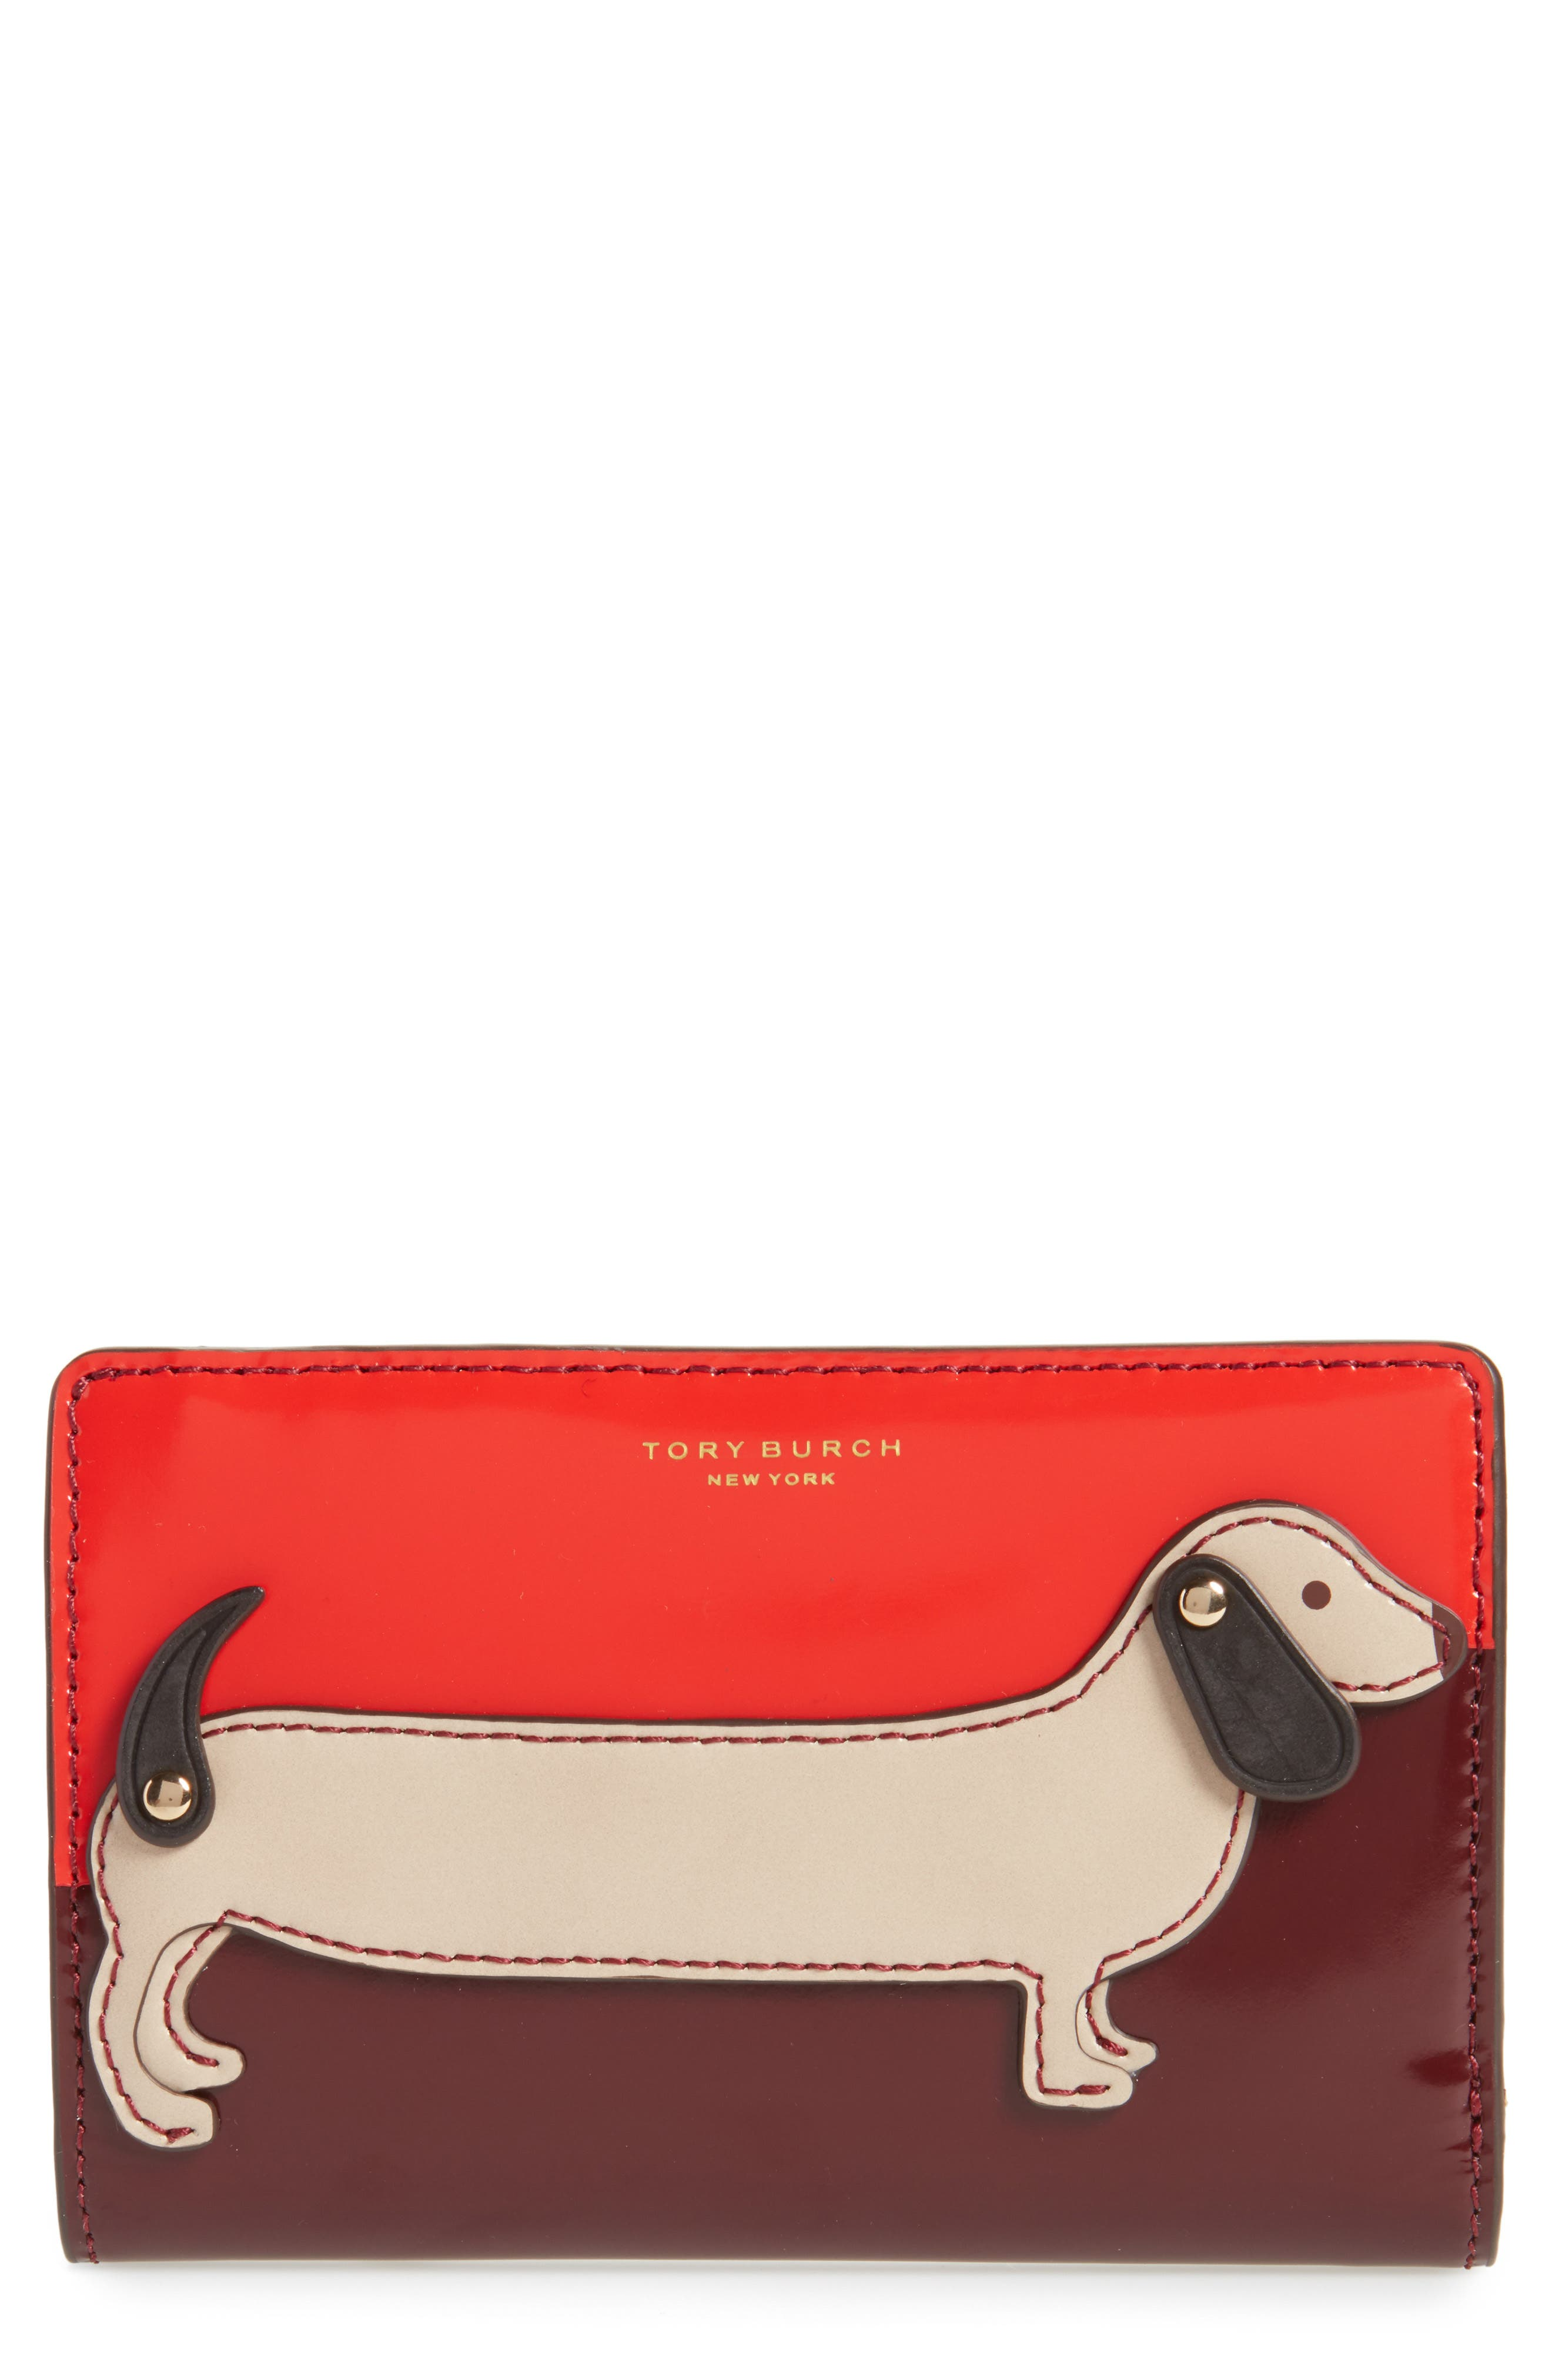 Medium McGraw Dachshund Slim Leather Wallet,                         Main,                         color, Liberty Red